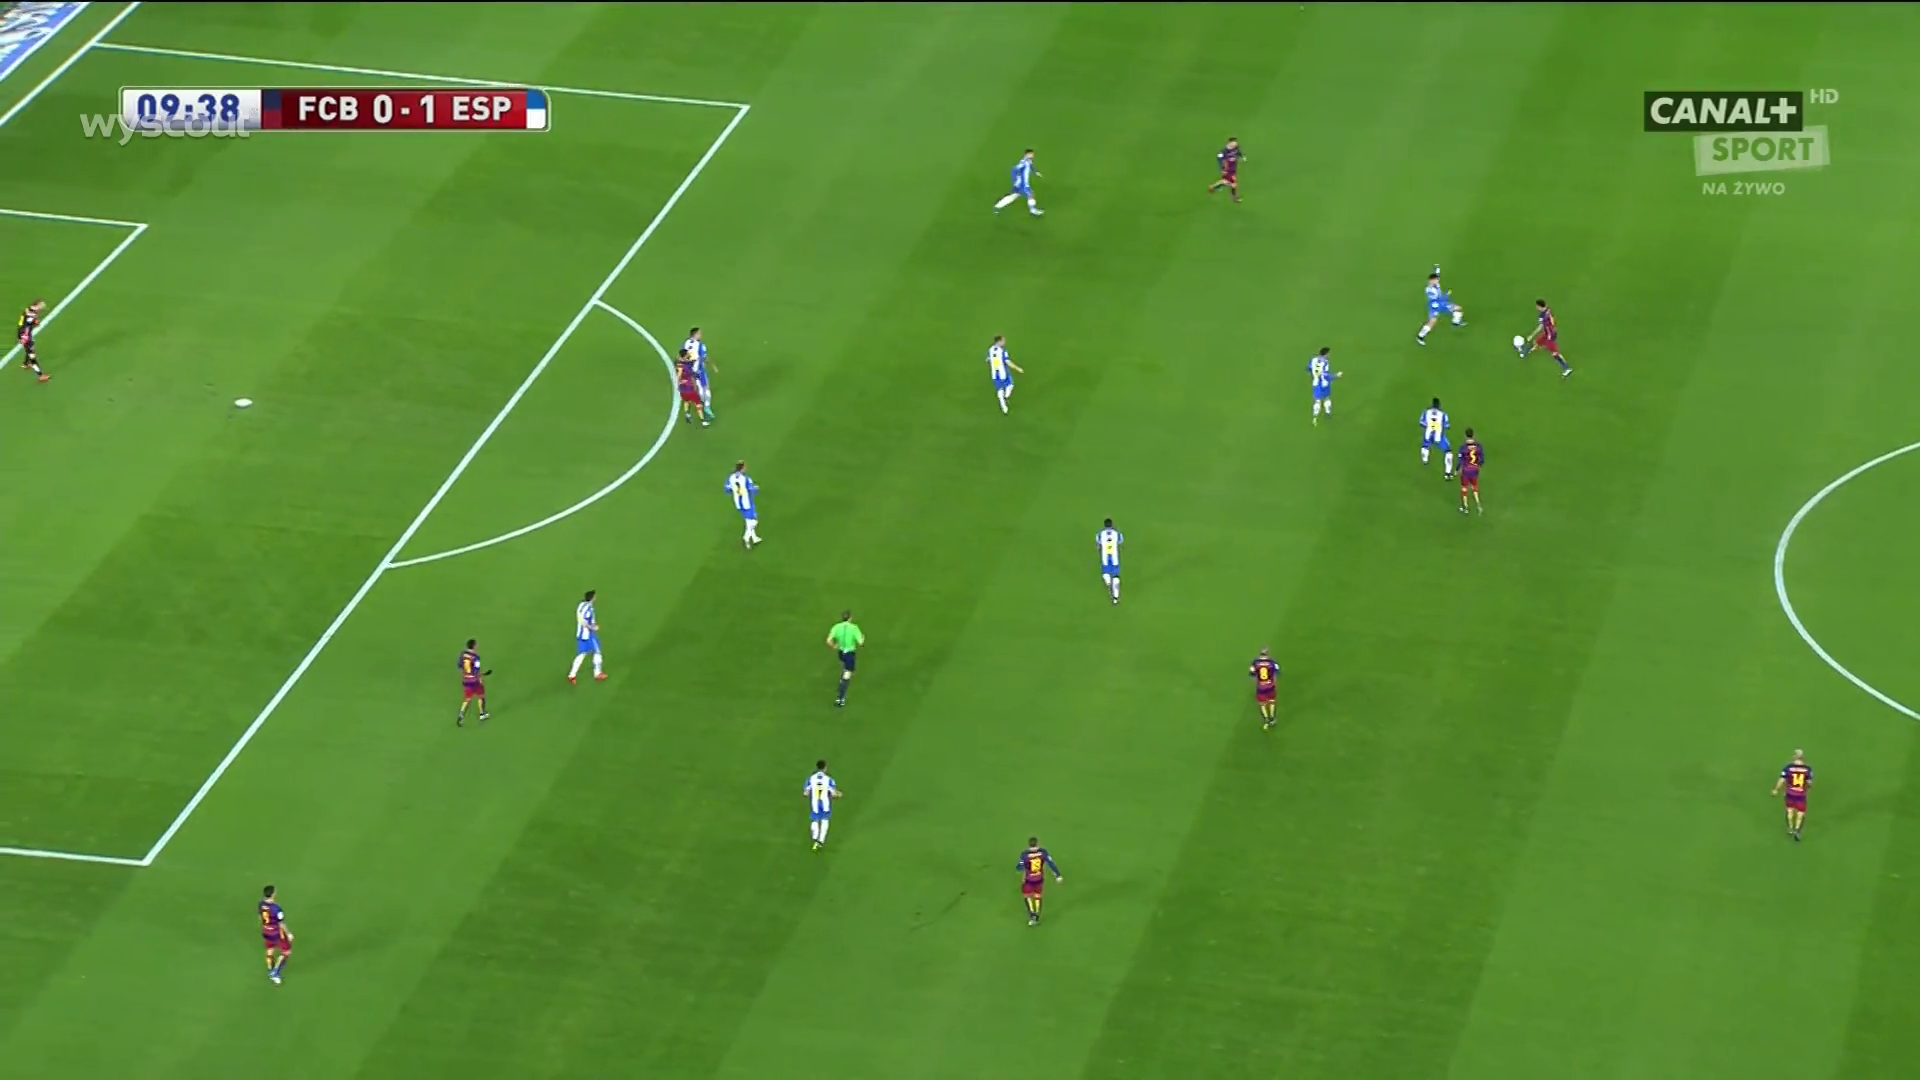 Barcelona's structure before losing possession for Espanyol's goal.